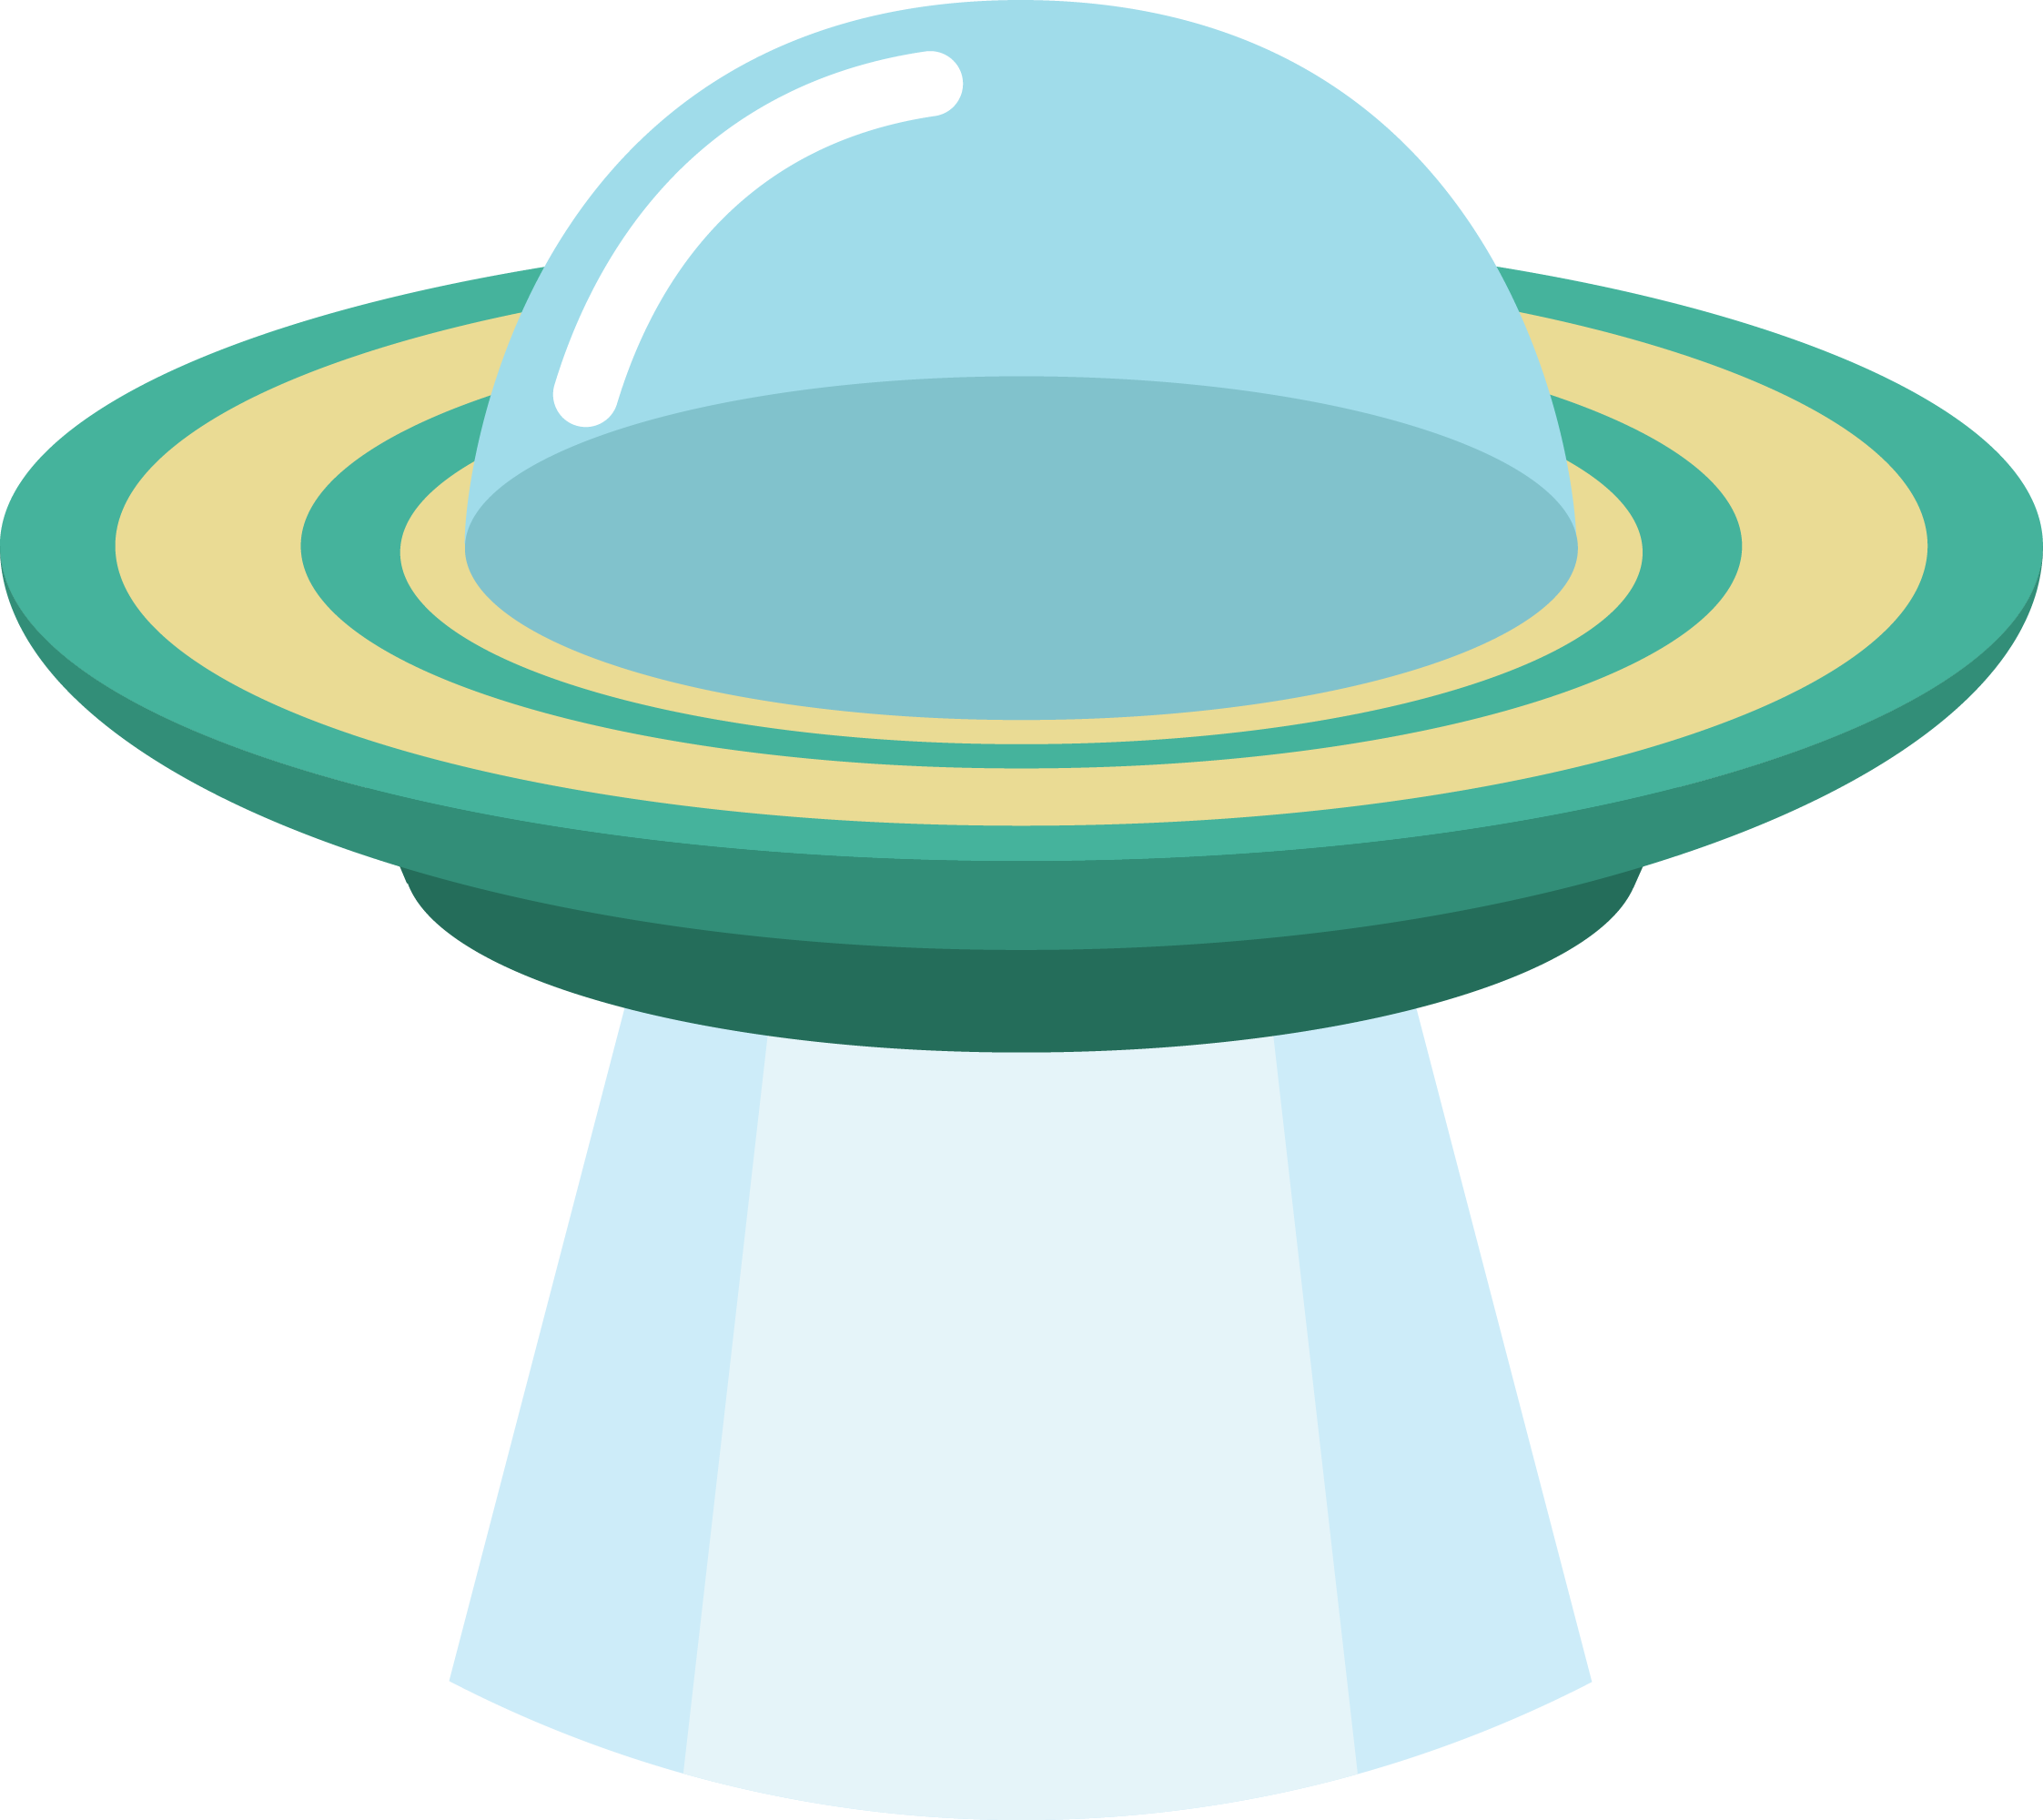 Png image purepng free. Ufo clipart